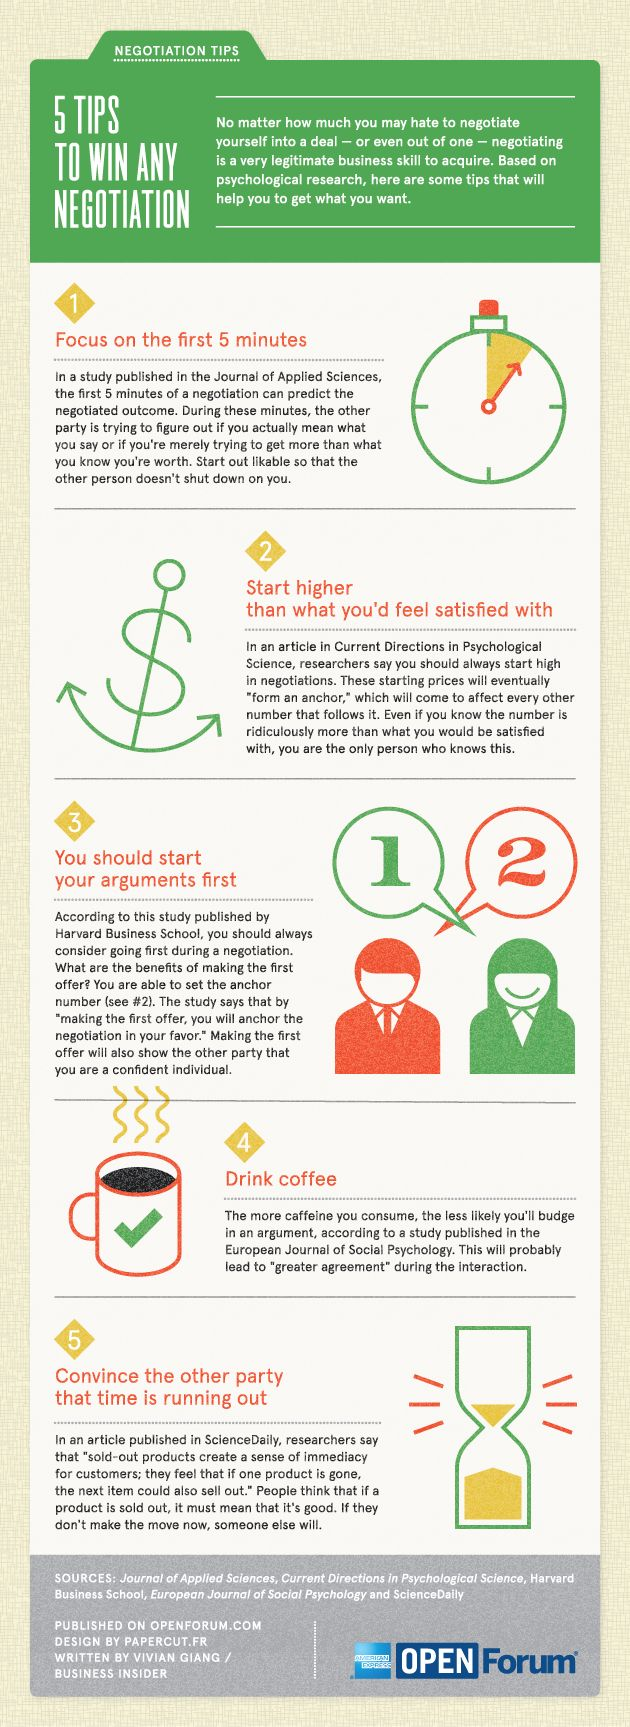 5 tips to win any negociation #infographic